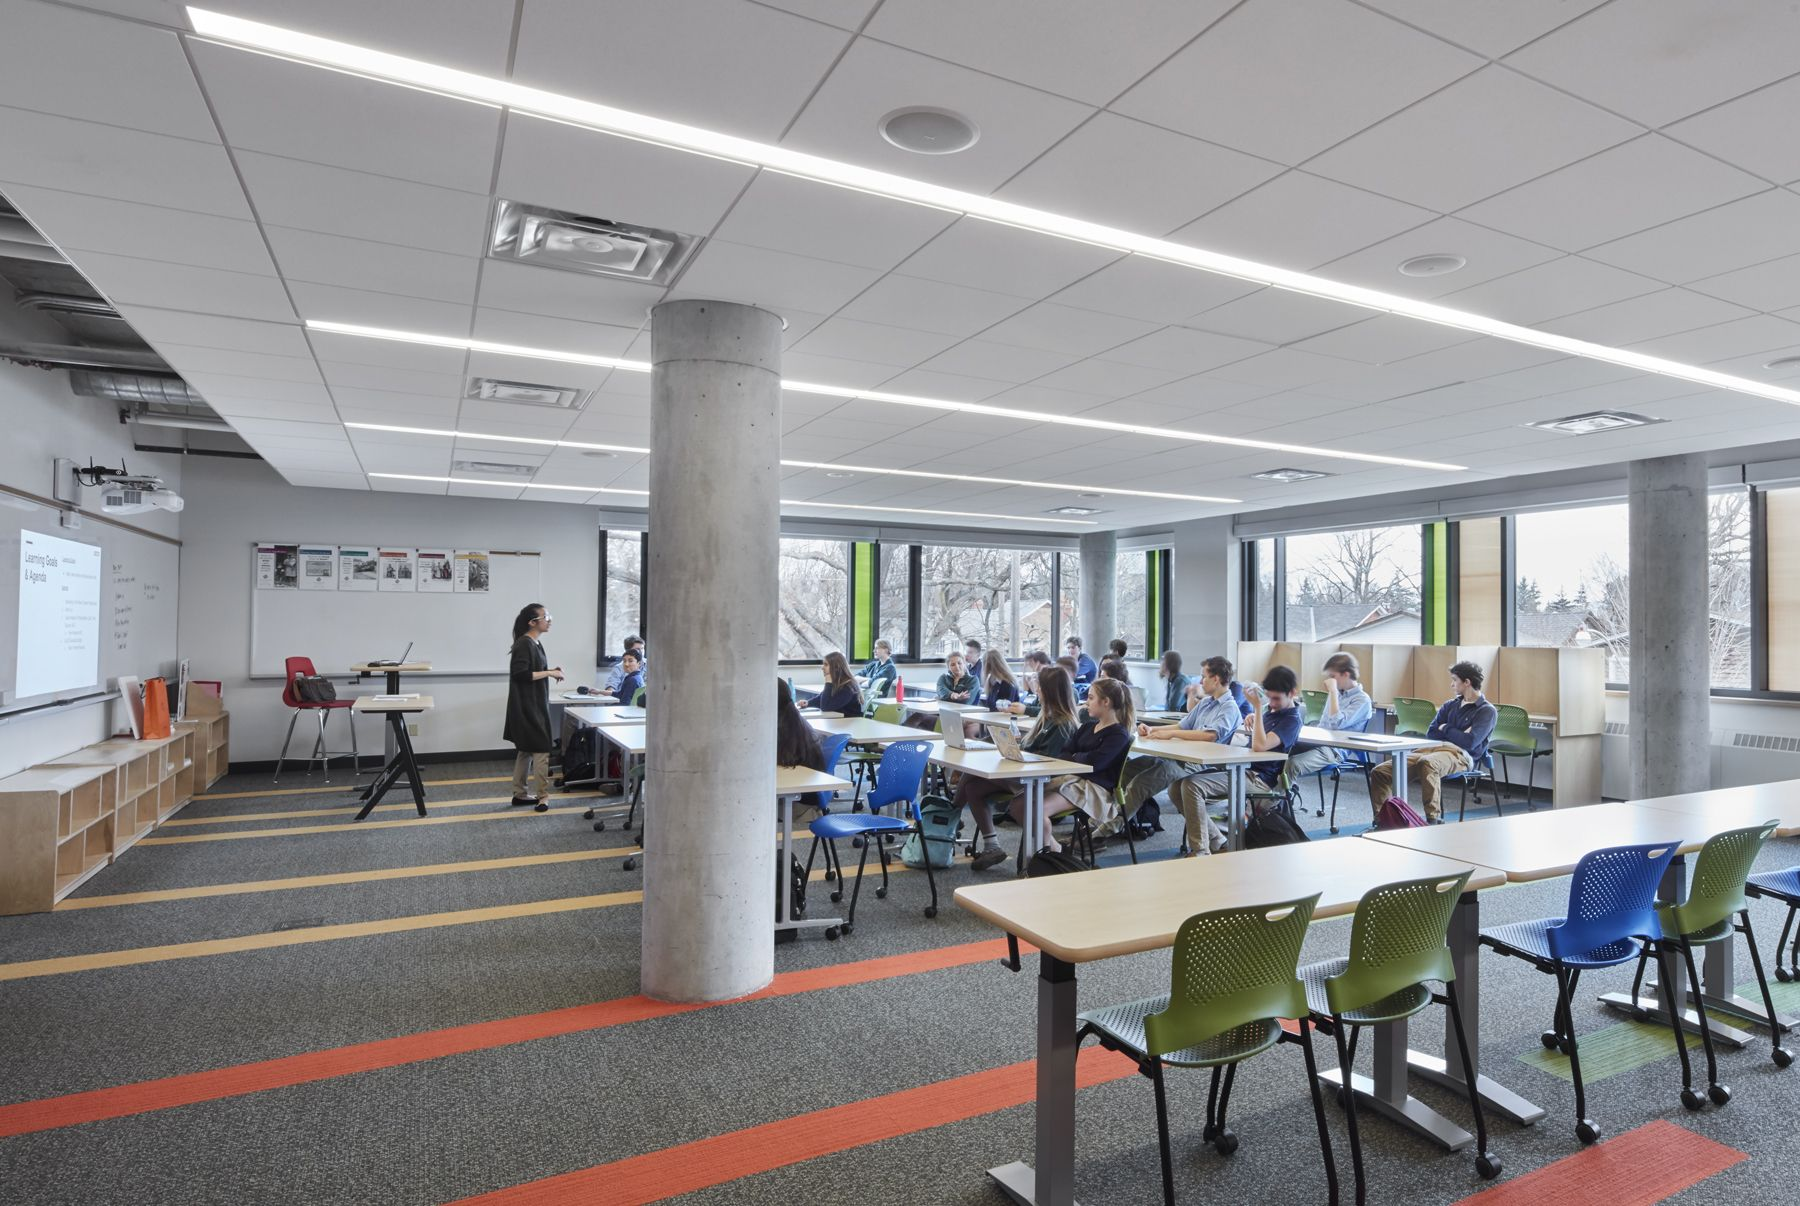 Greenwood's building features three Learning Community classrooms. These flexible rooms easily reconfigure to support many different types of instruction.